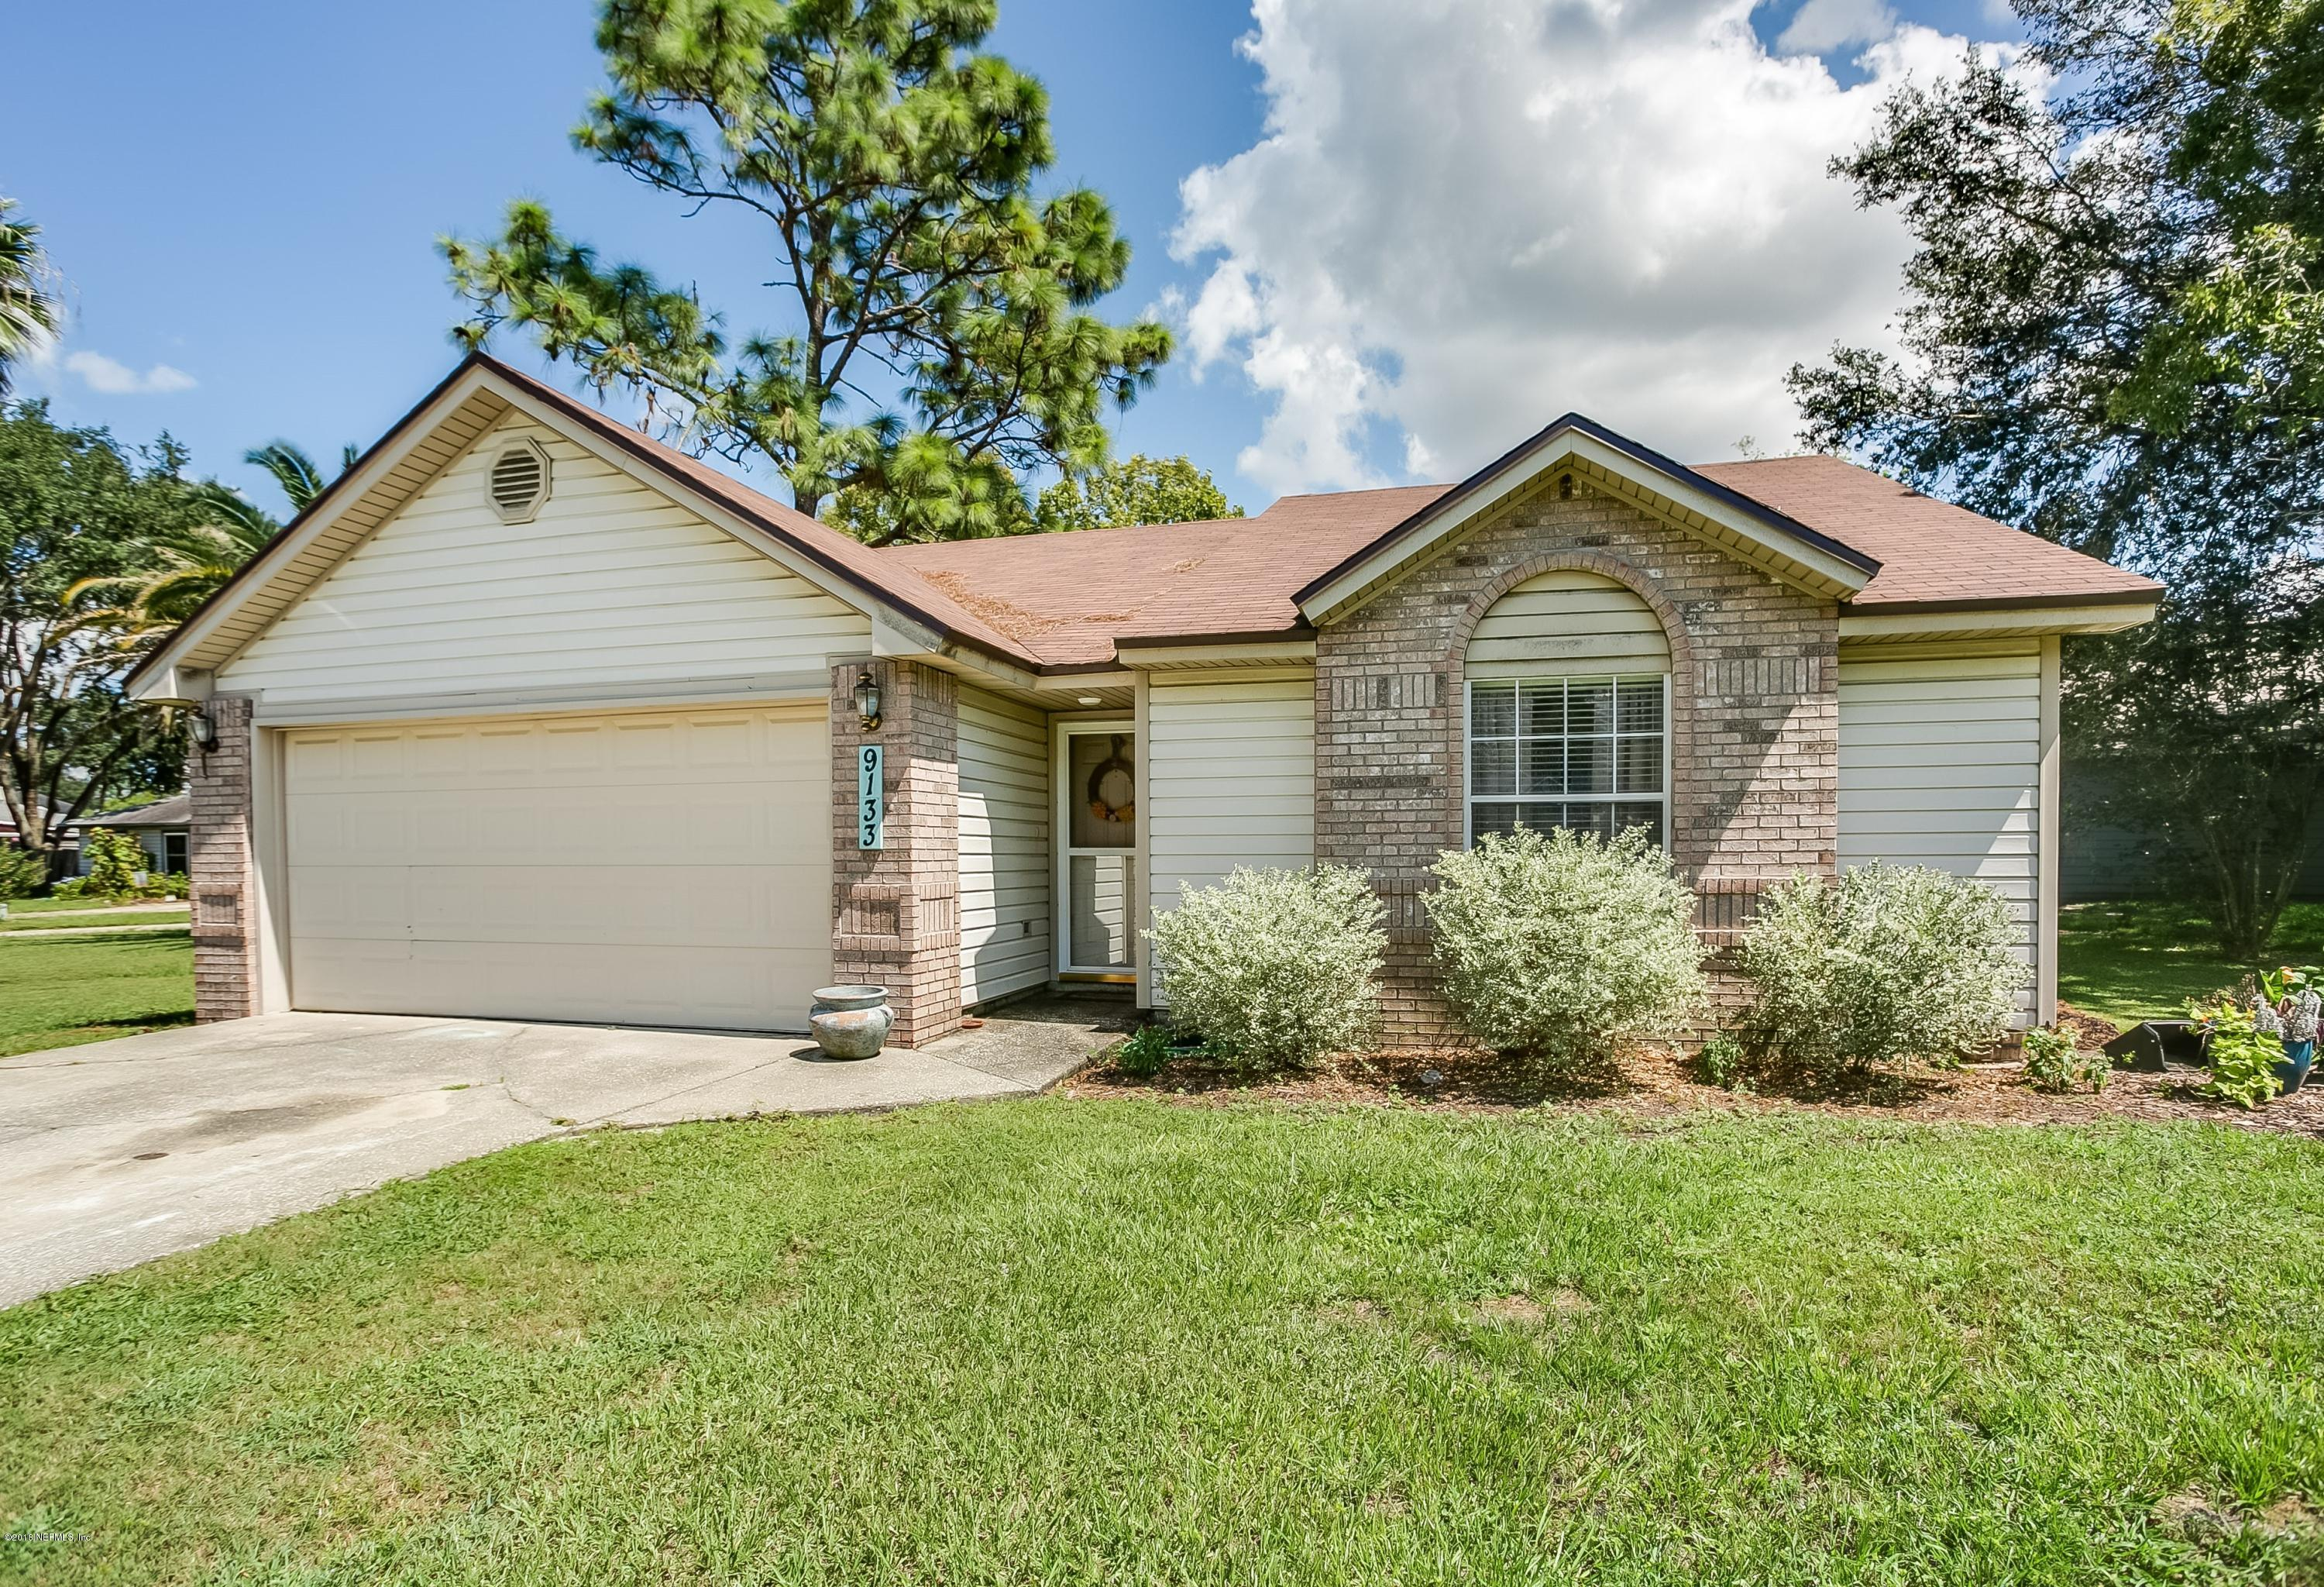 9133 SMOKETREE, JACKSONVILLE, FLORIDA 32244, 3 Bedrooms Bedrooms, ,2 BathroomsBathrooms,Residential - single family,For sale,SMOKETREE,957757